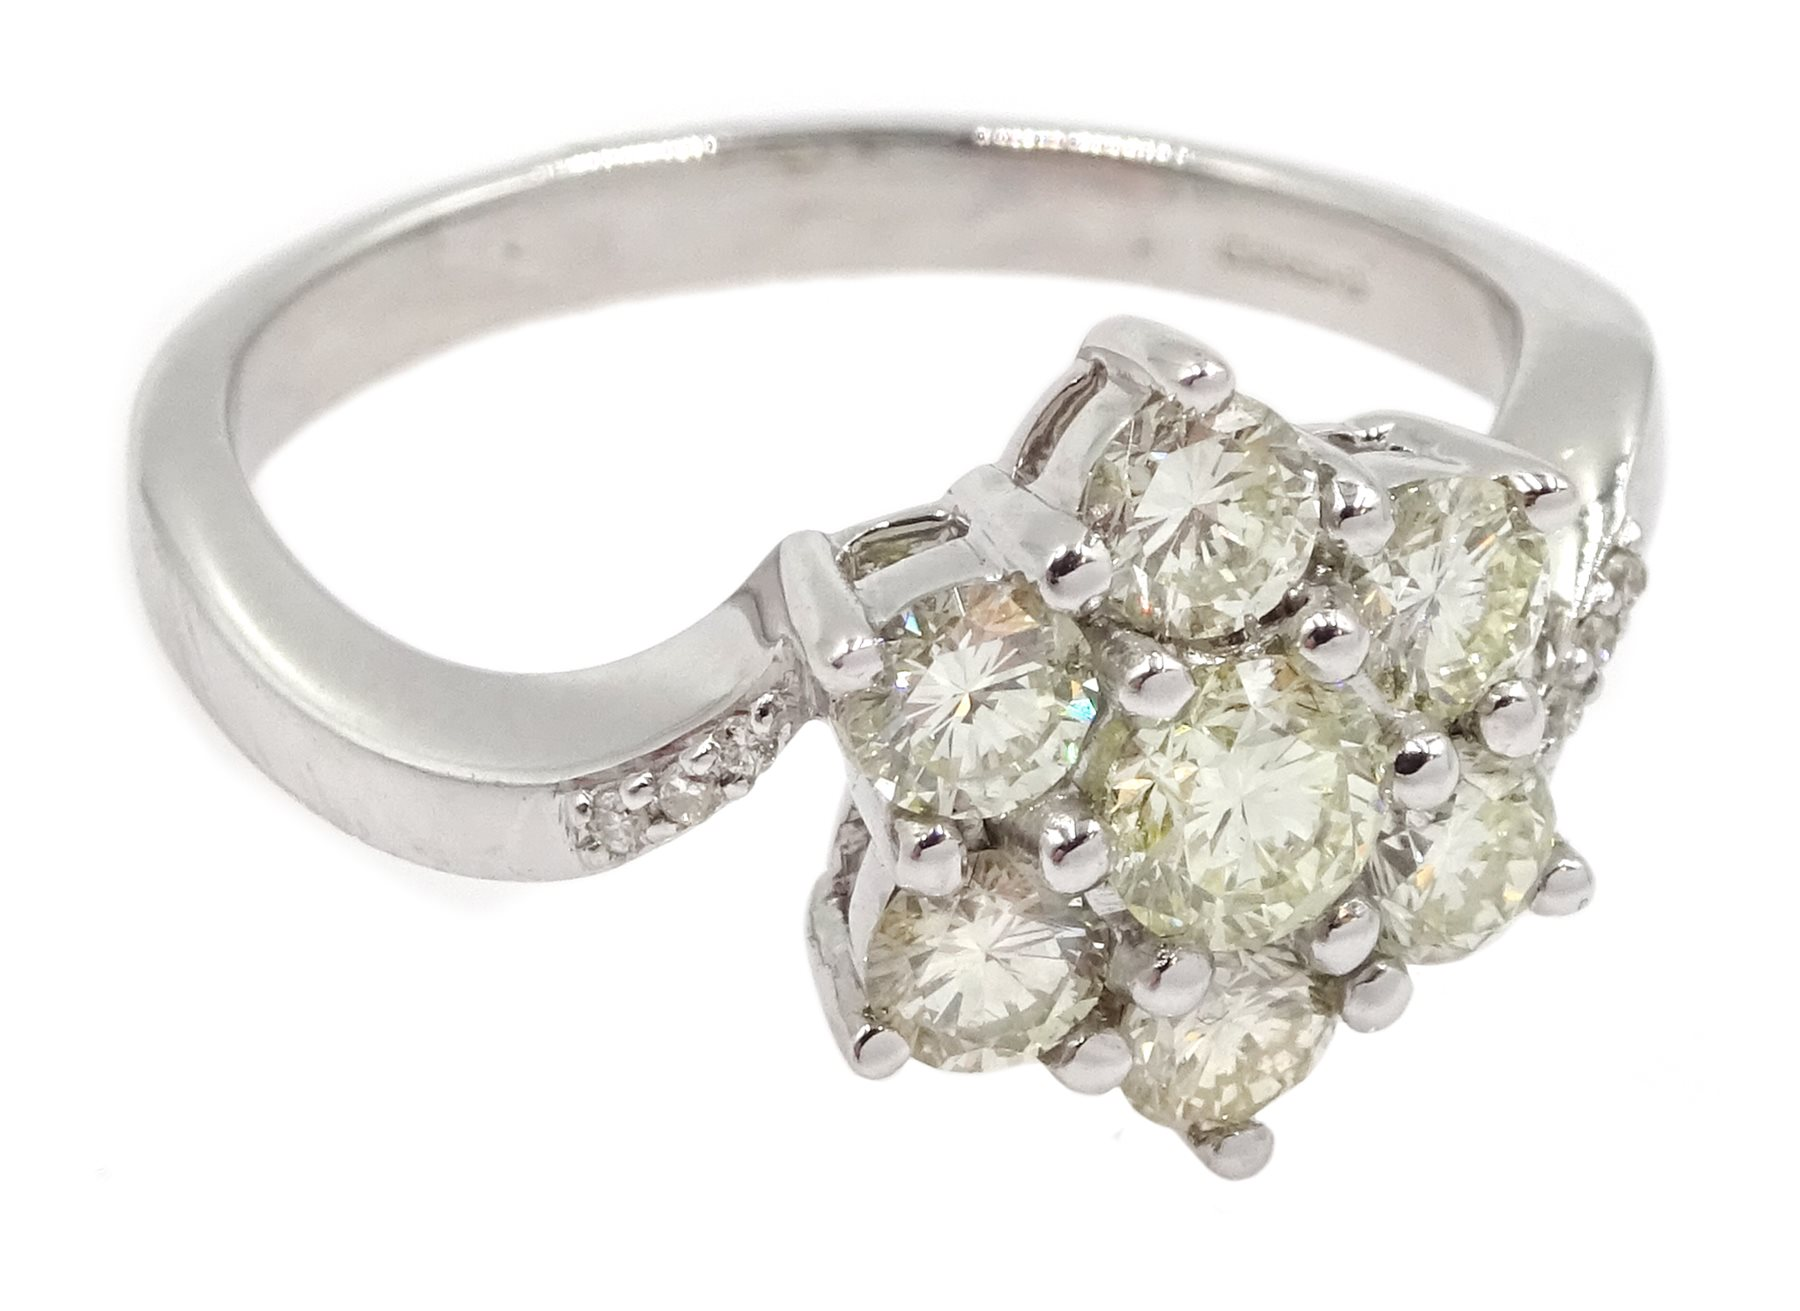 18ct white gold diamond cluster ring - Image 3 of 4